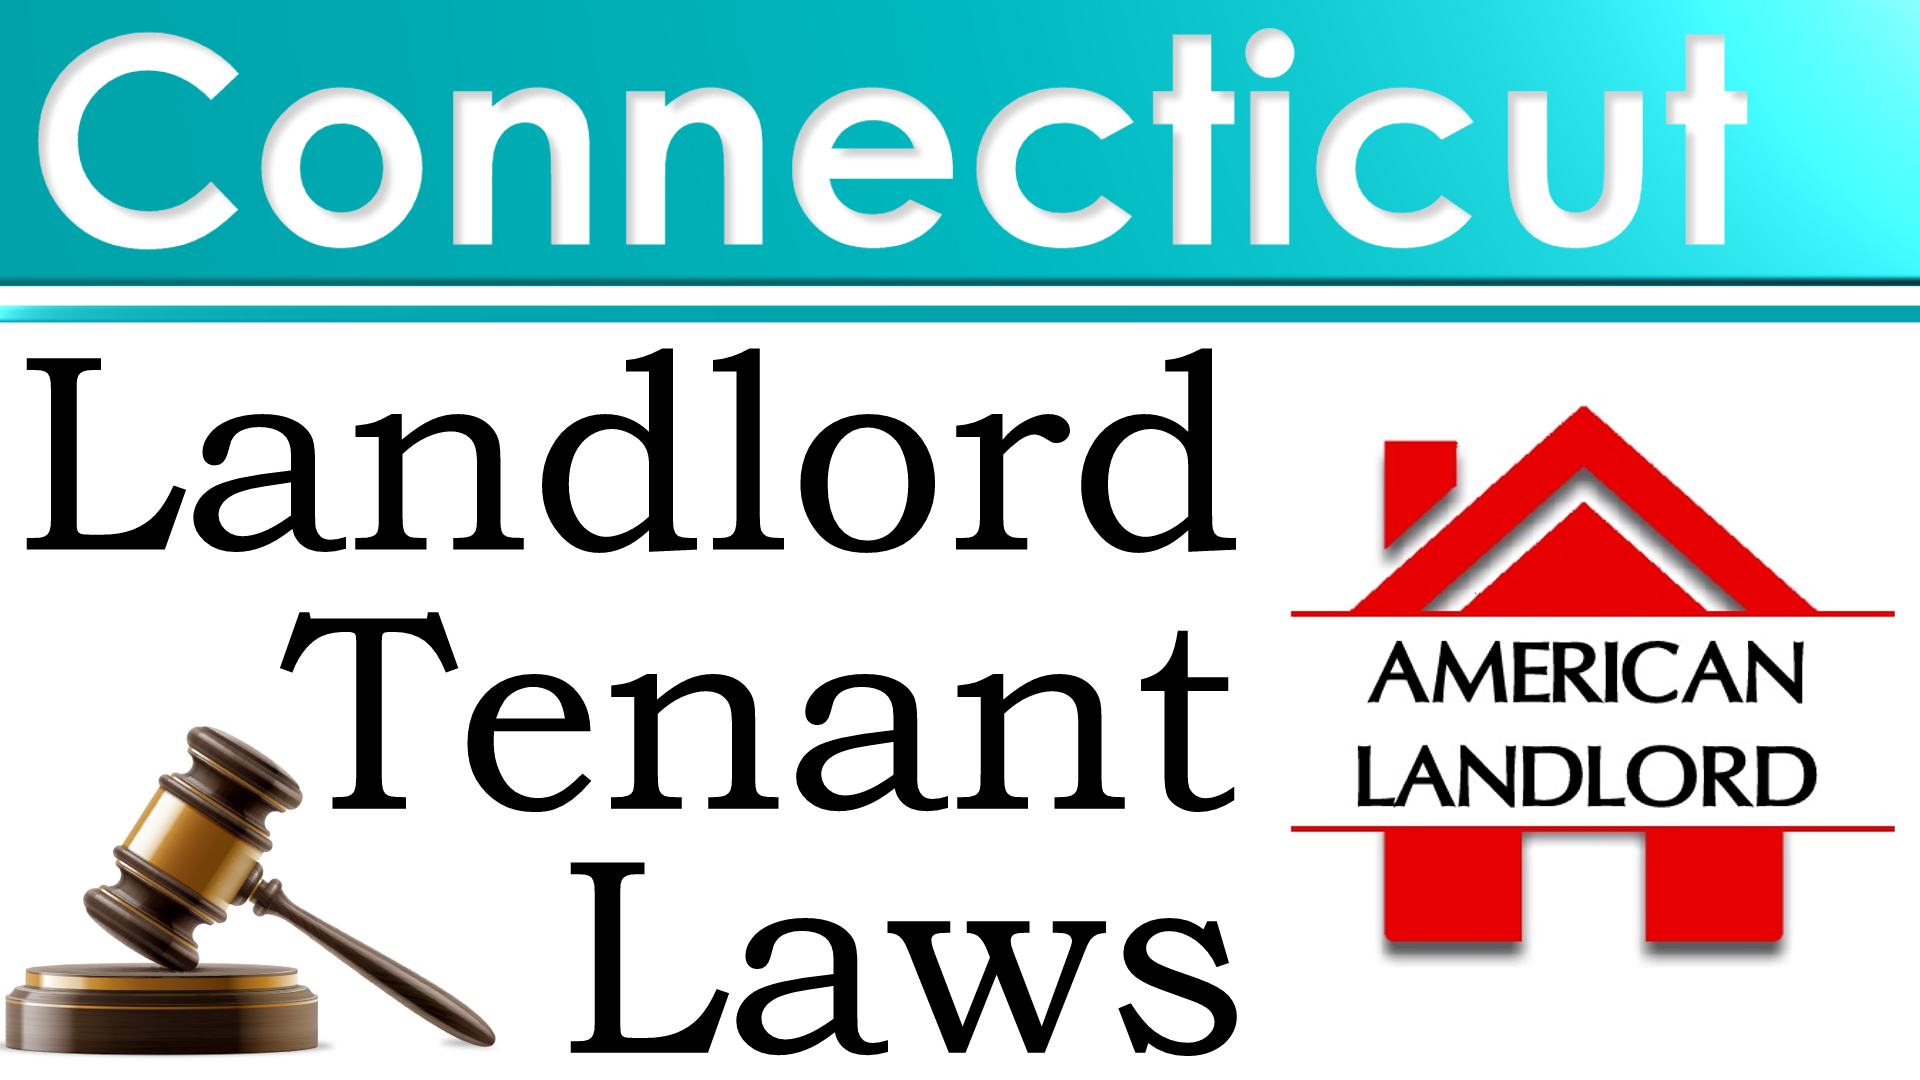 Connecticut Landlord Tenant Law